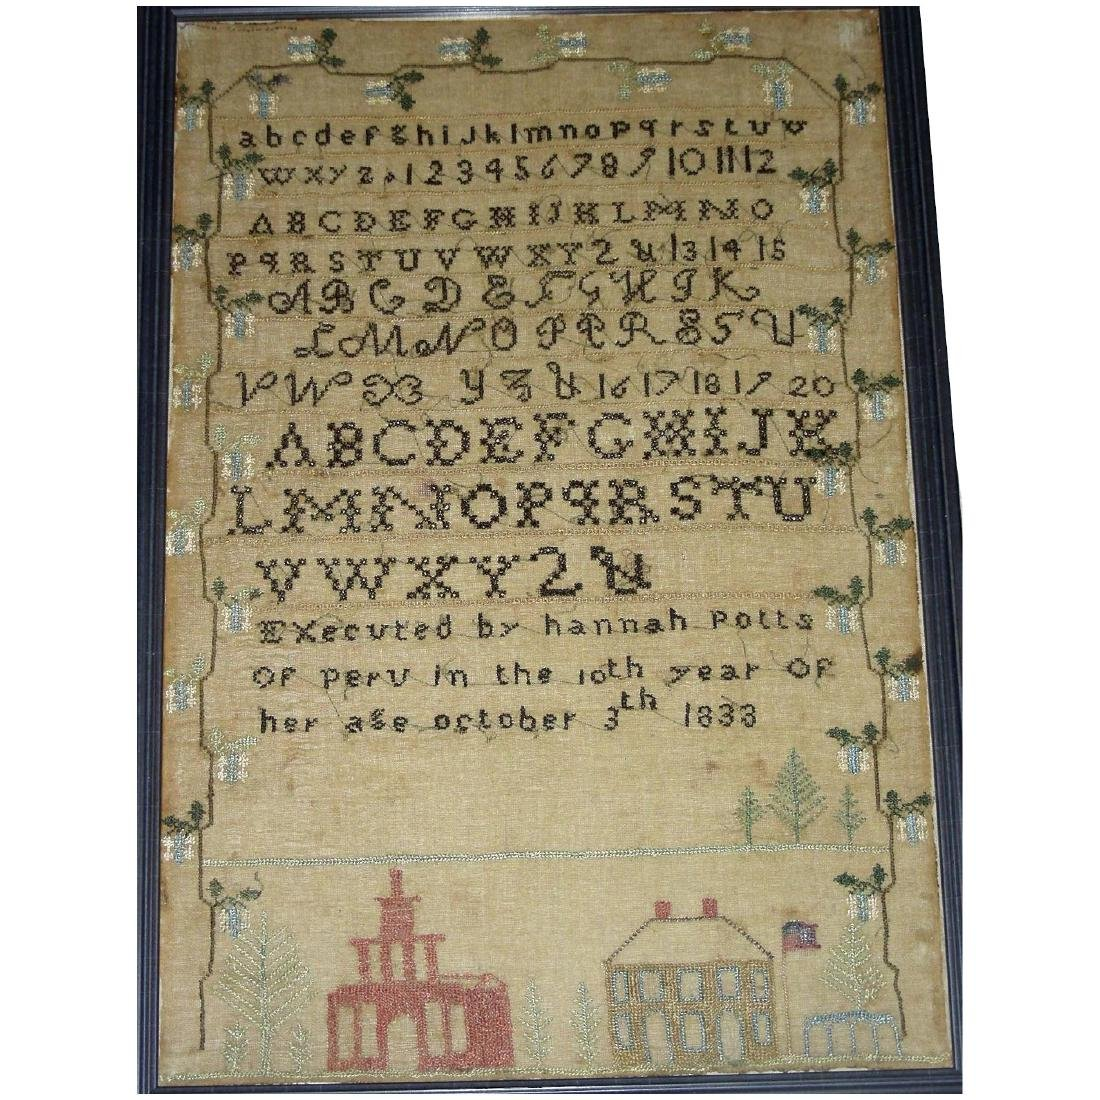 American Needlework Sampler by Hannah Potts, 1833